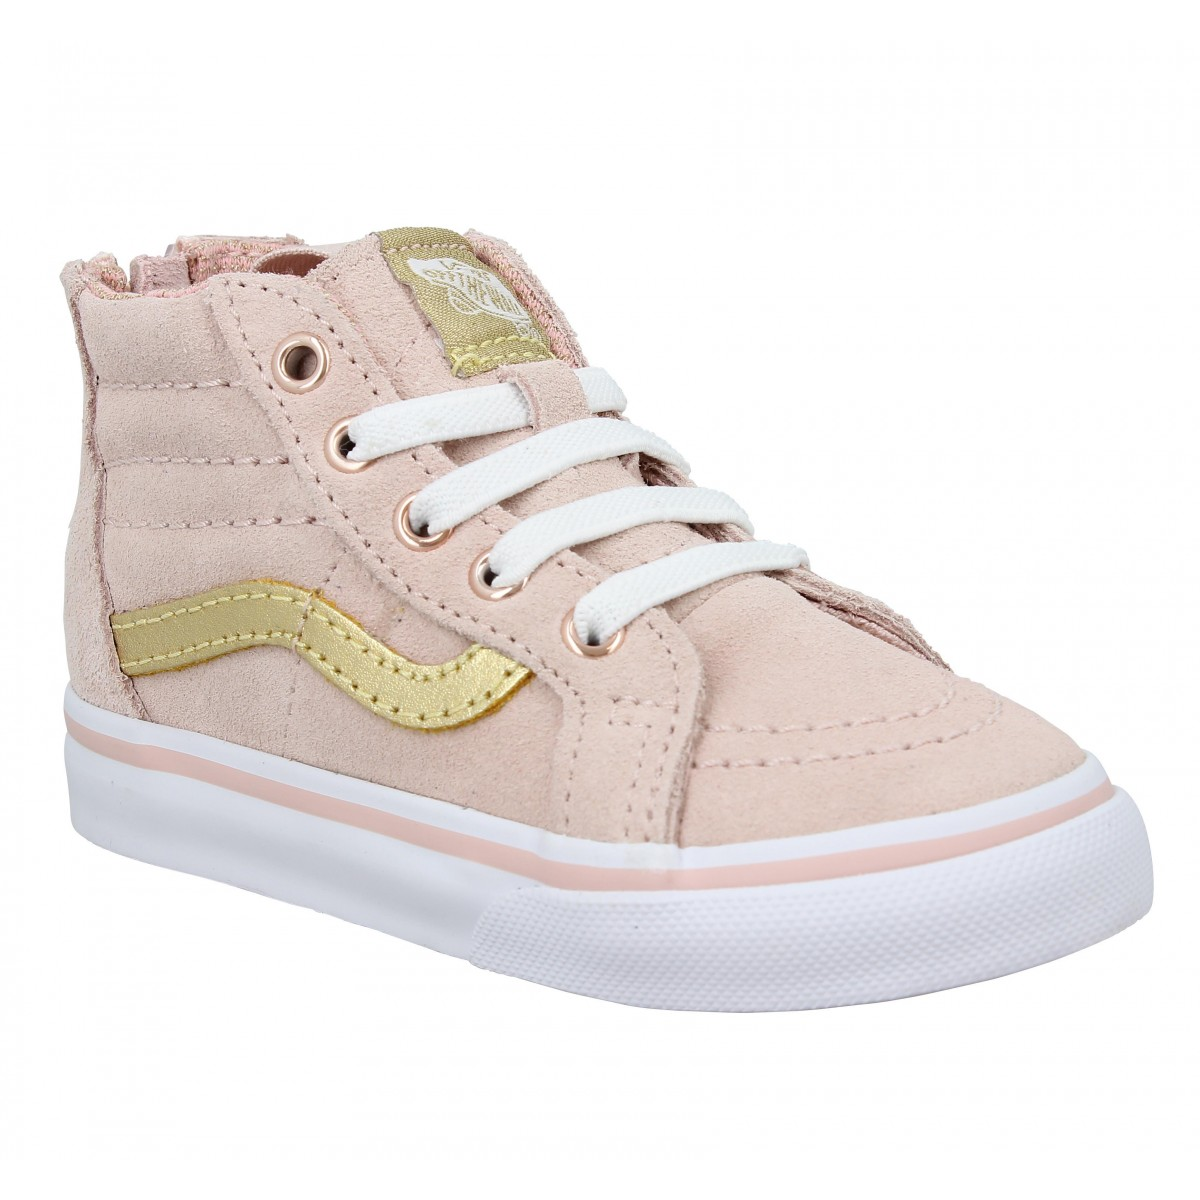 Baskets VANS SK8 Hi velours Enfant Rose